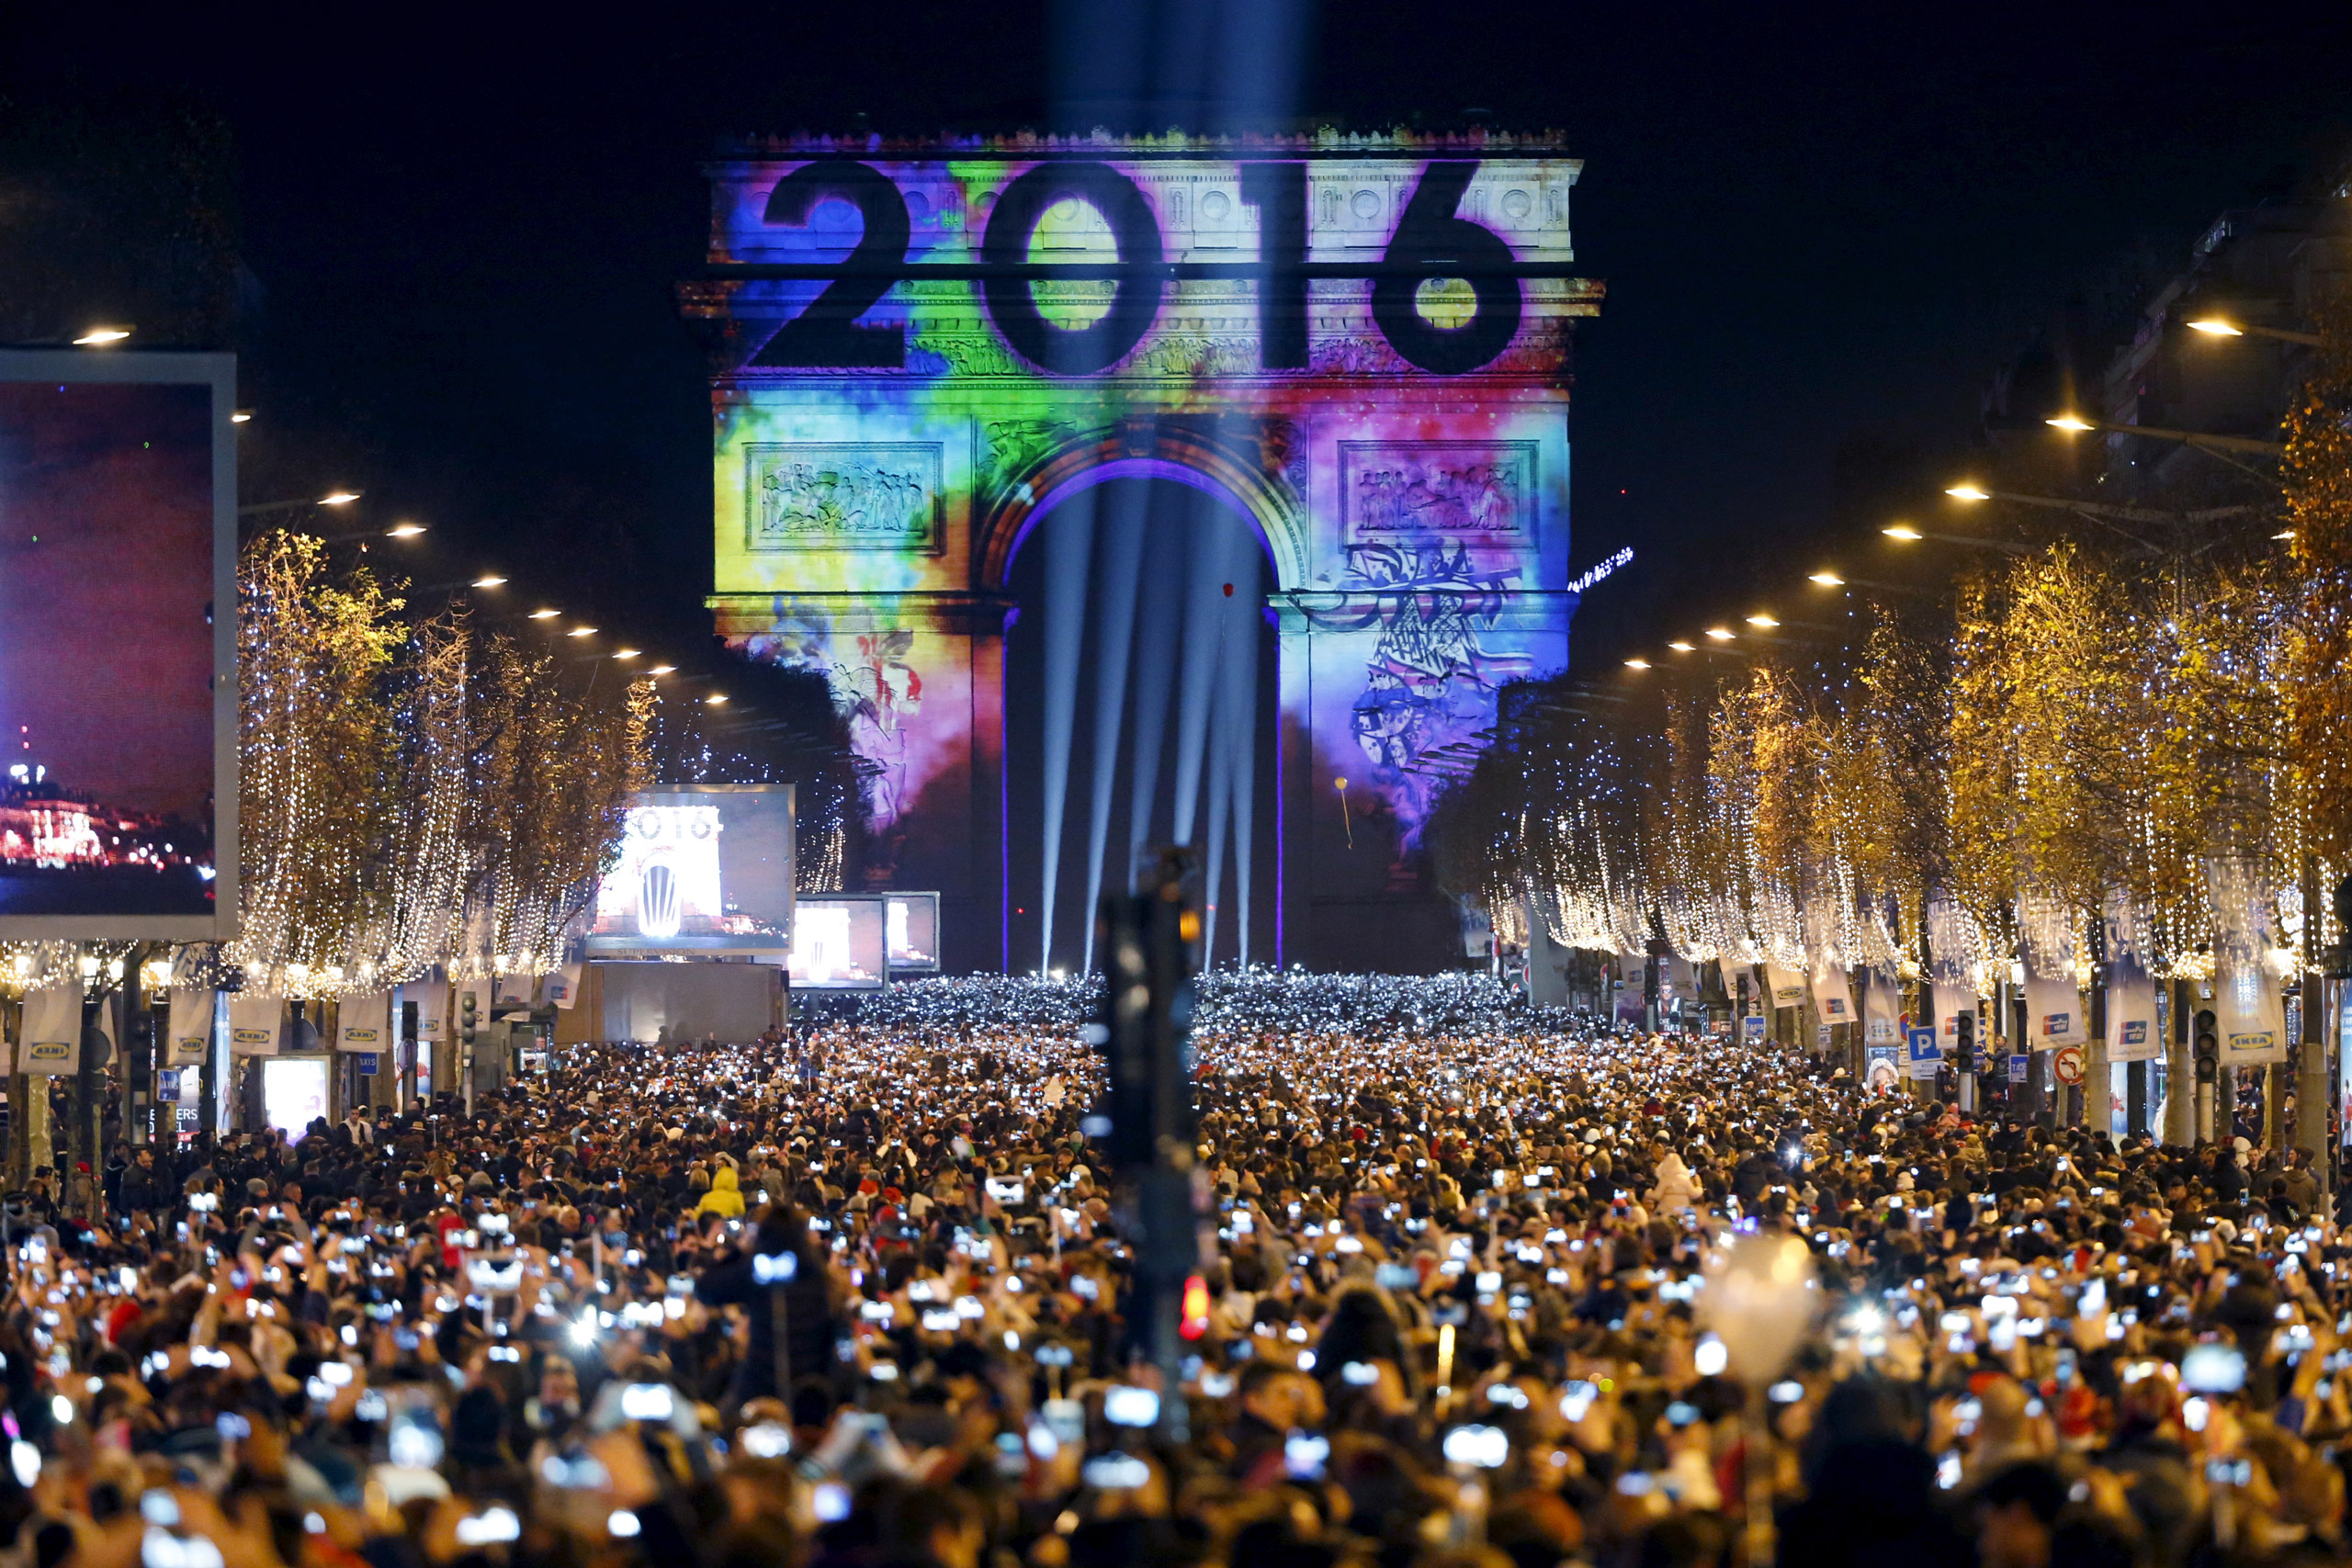 Revellers gather near the Arc de Triomphe on the Champs Elysees during New Year celebrations in Paris on Jan. 1, 2016.